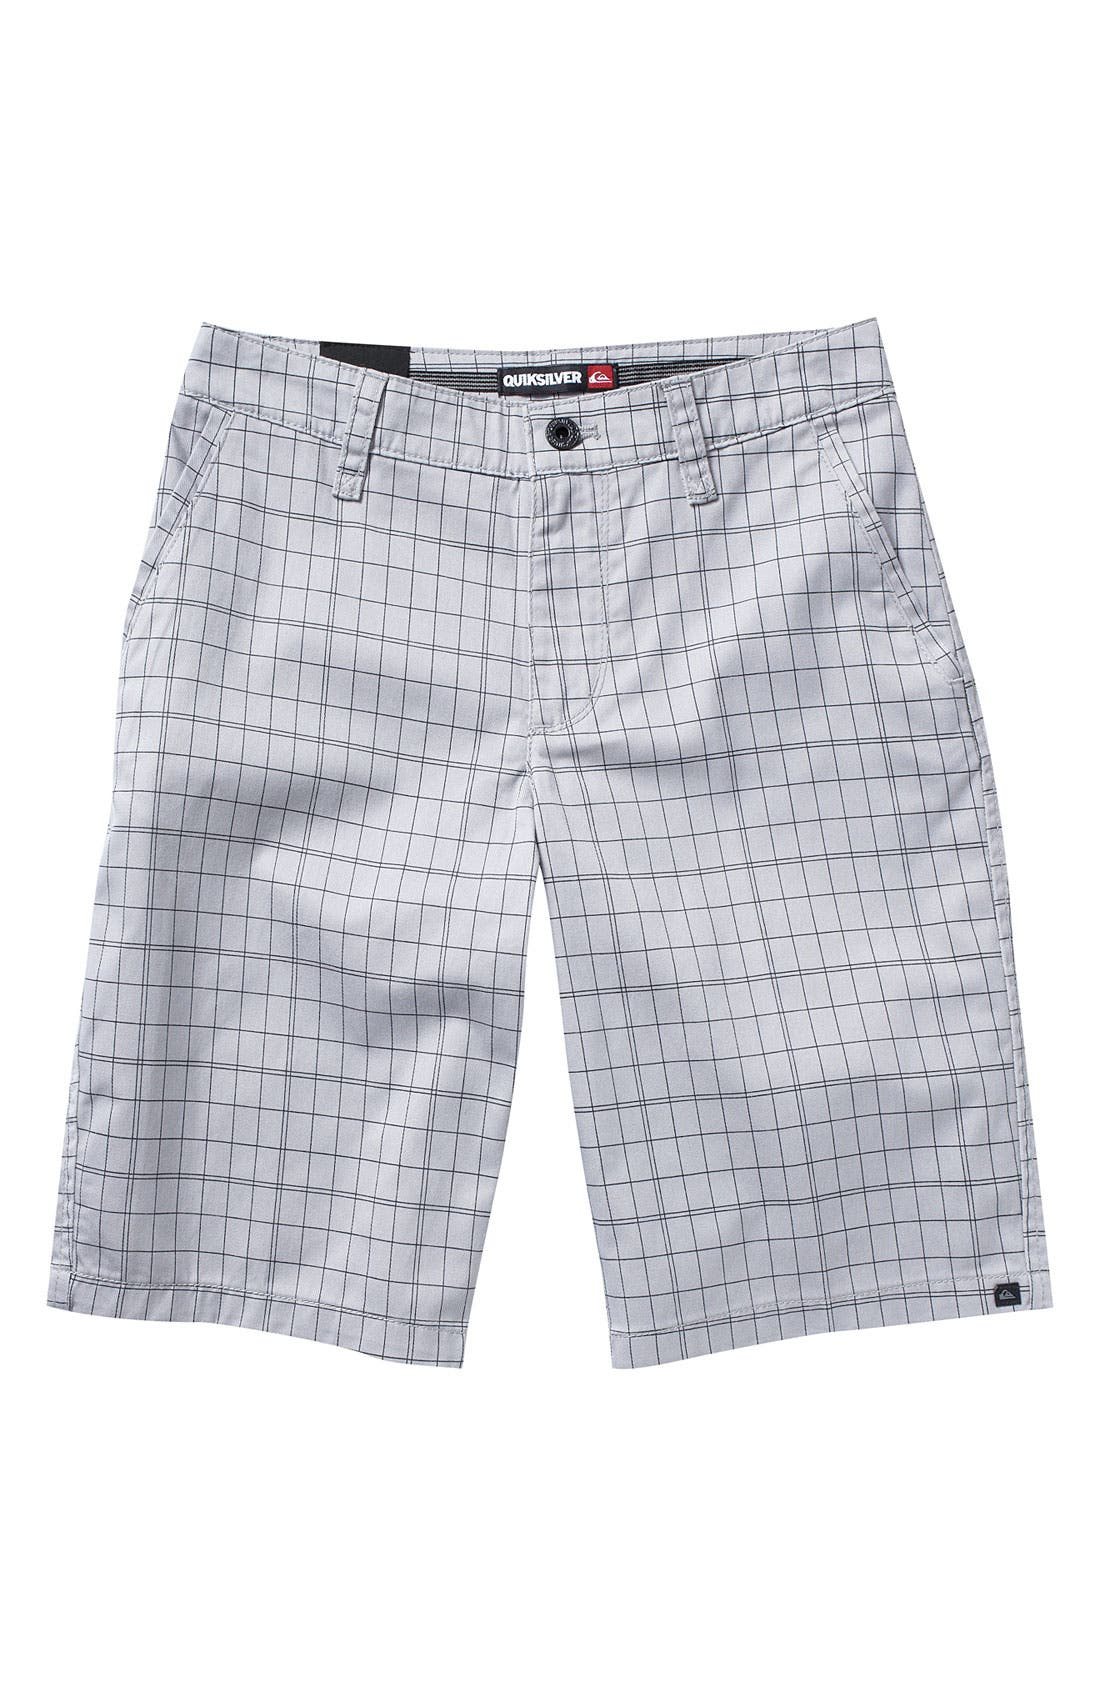 Main Image - Quiksilver 'Nuno' Shorts (Little Boys)